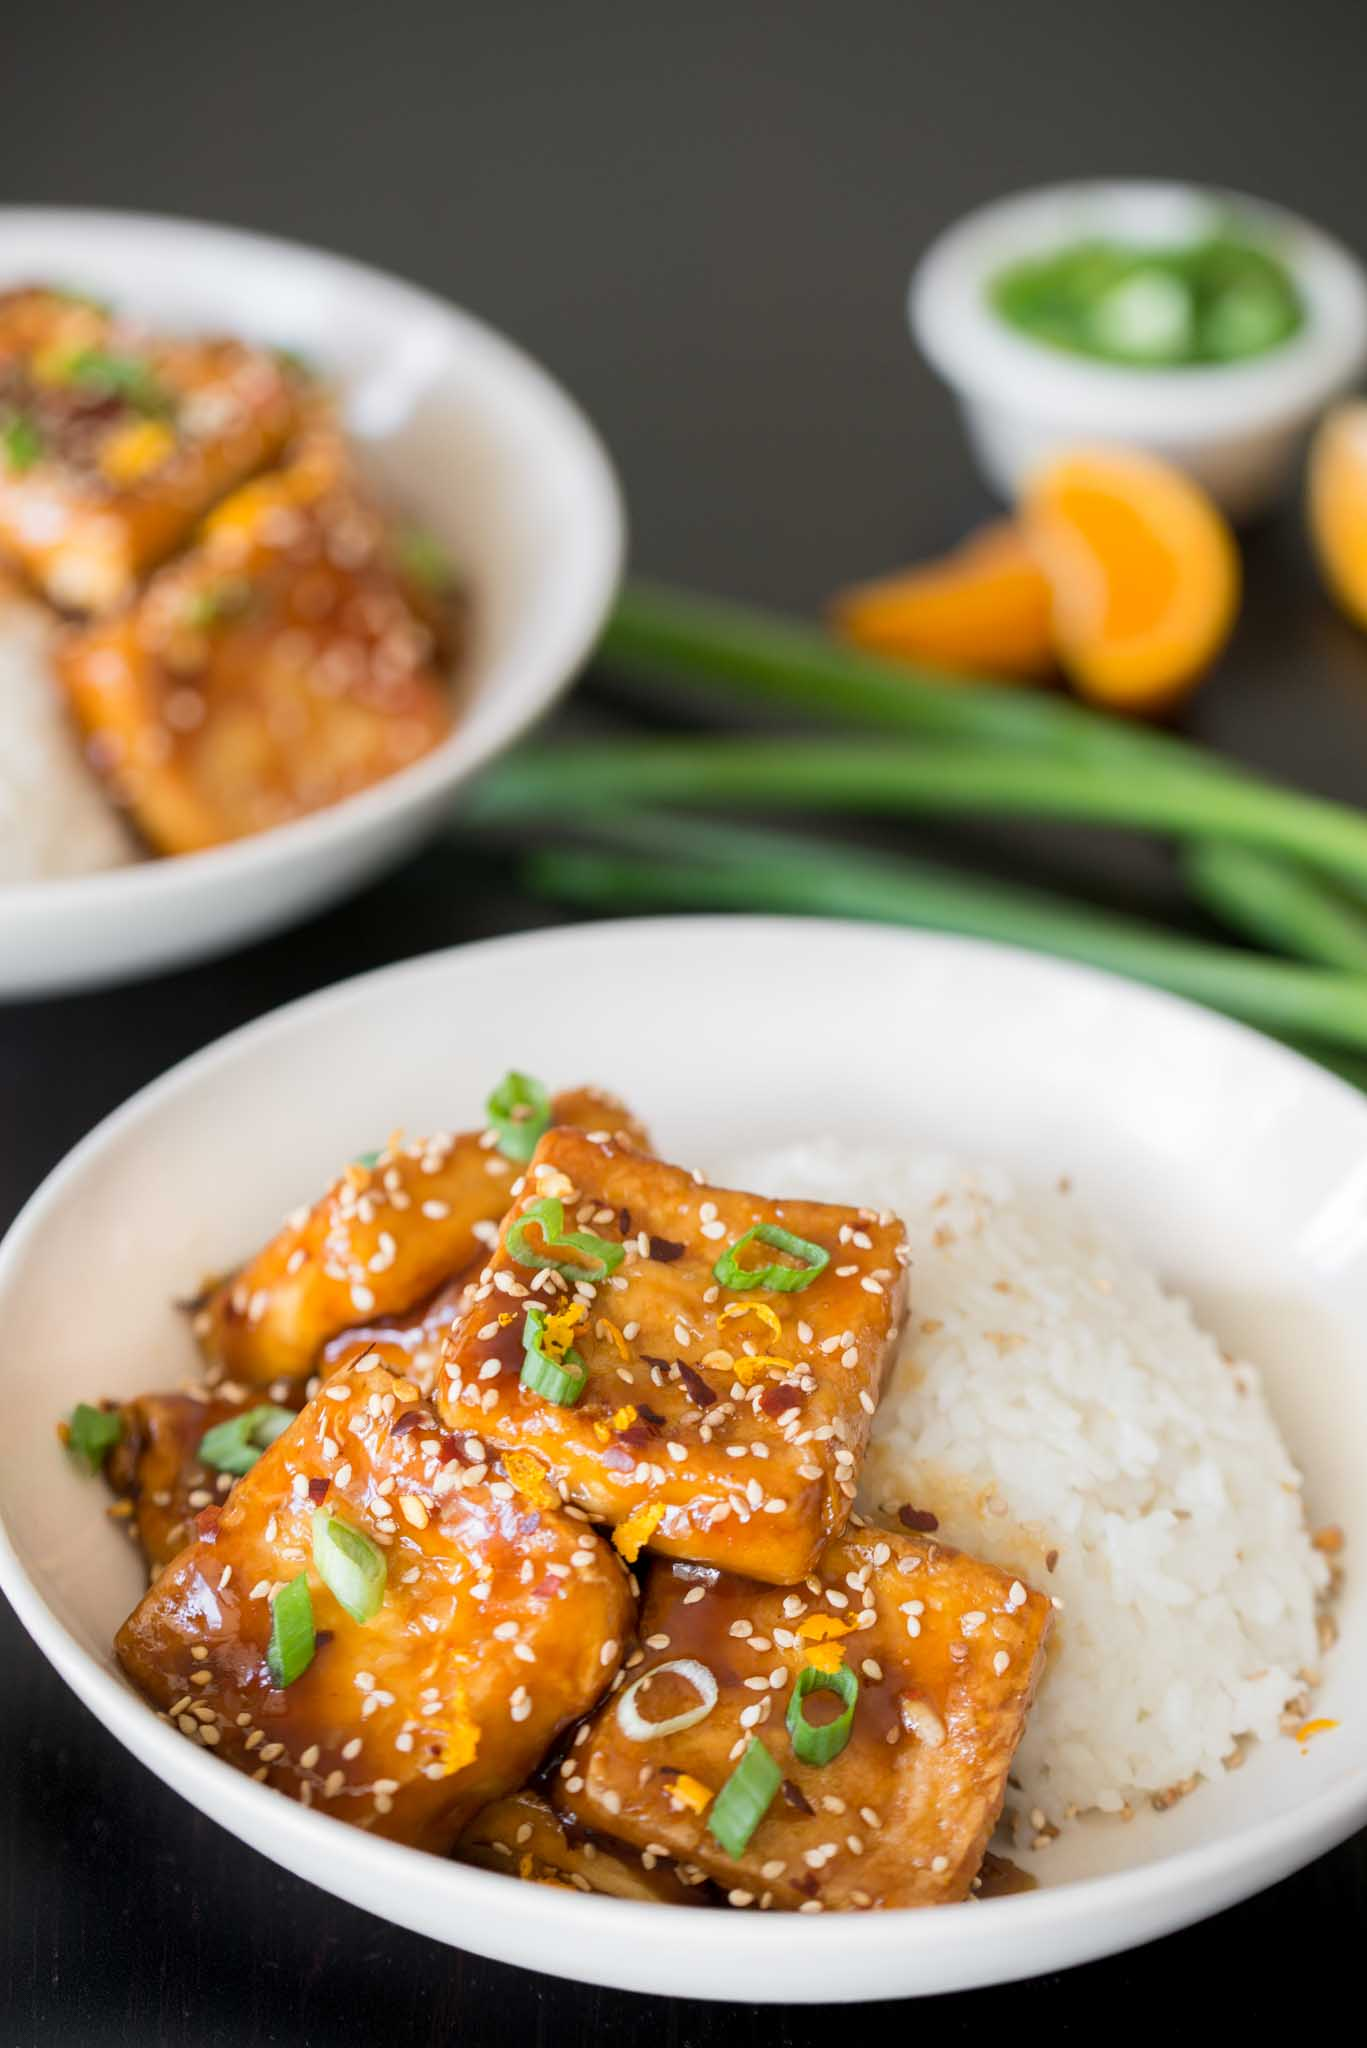 Mixed & Measured | Crispy Tofu with Sticky Tangerine Sauce